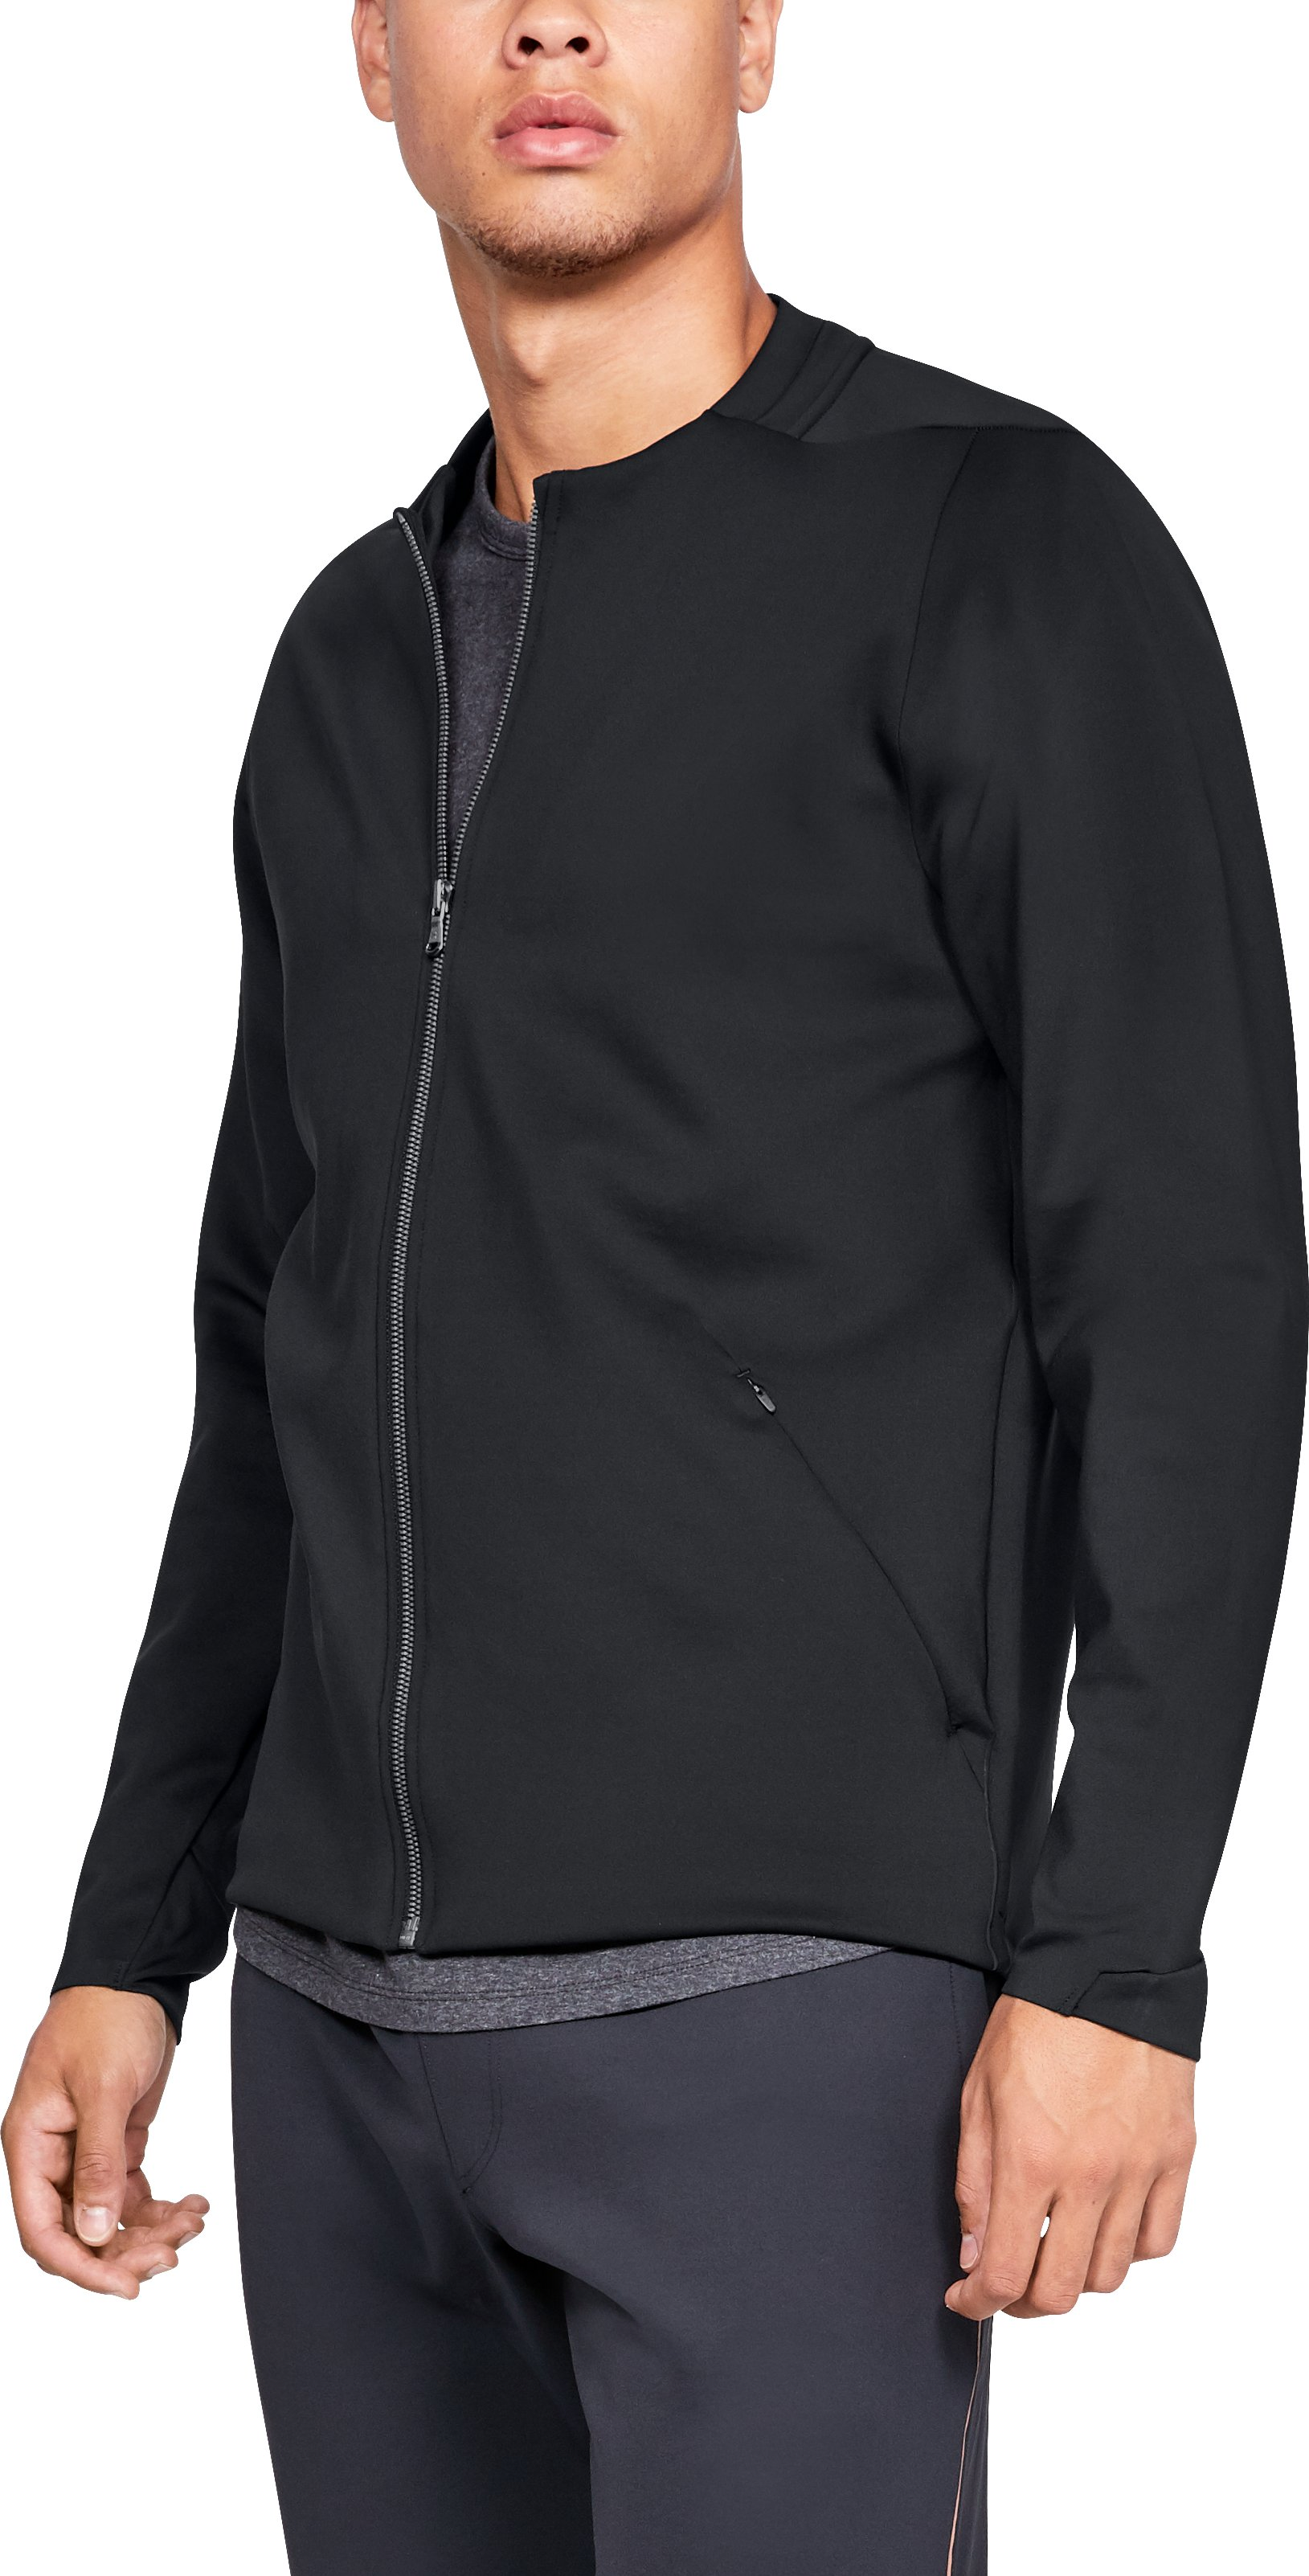 Men's Athlete Recovery Track Suit™ Elite Bomber 2 Colors $180.00